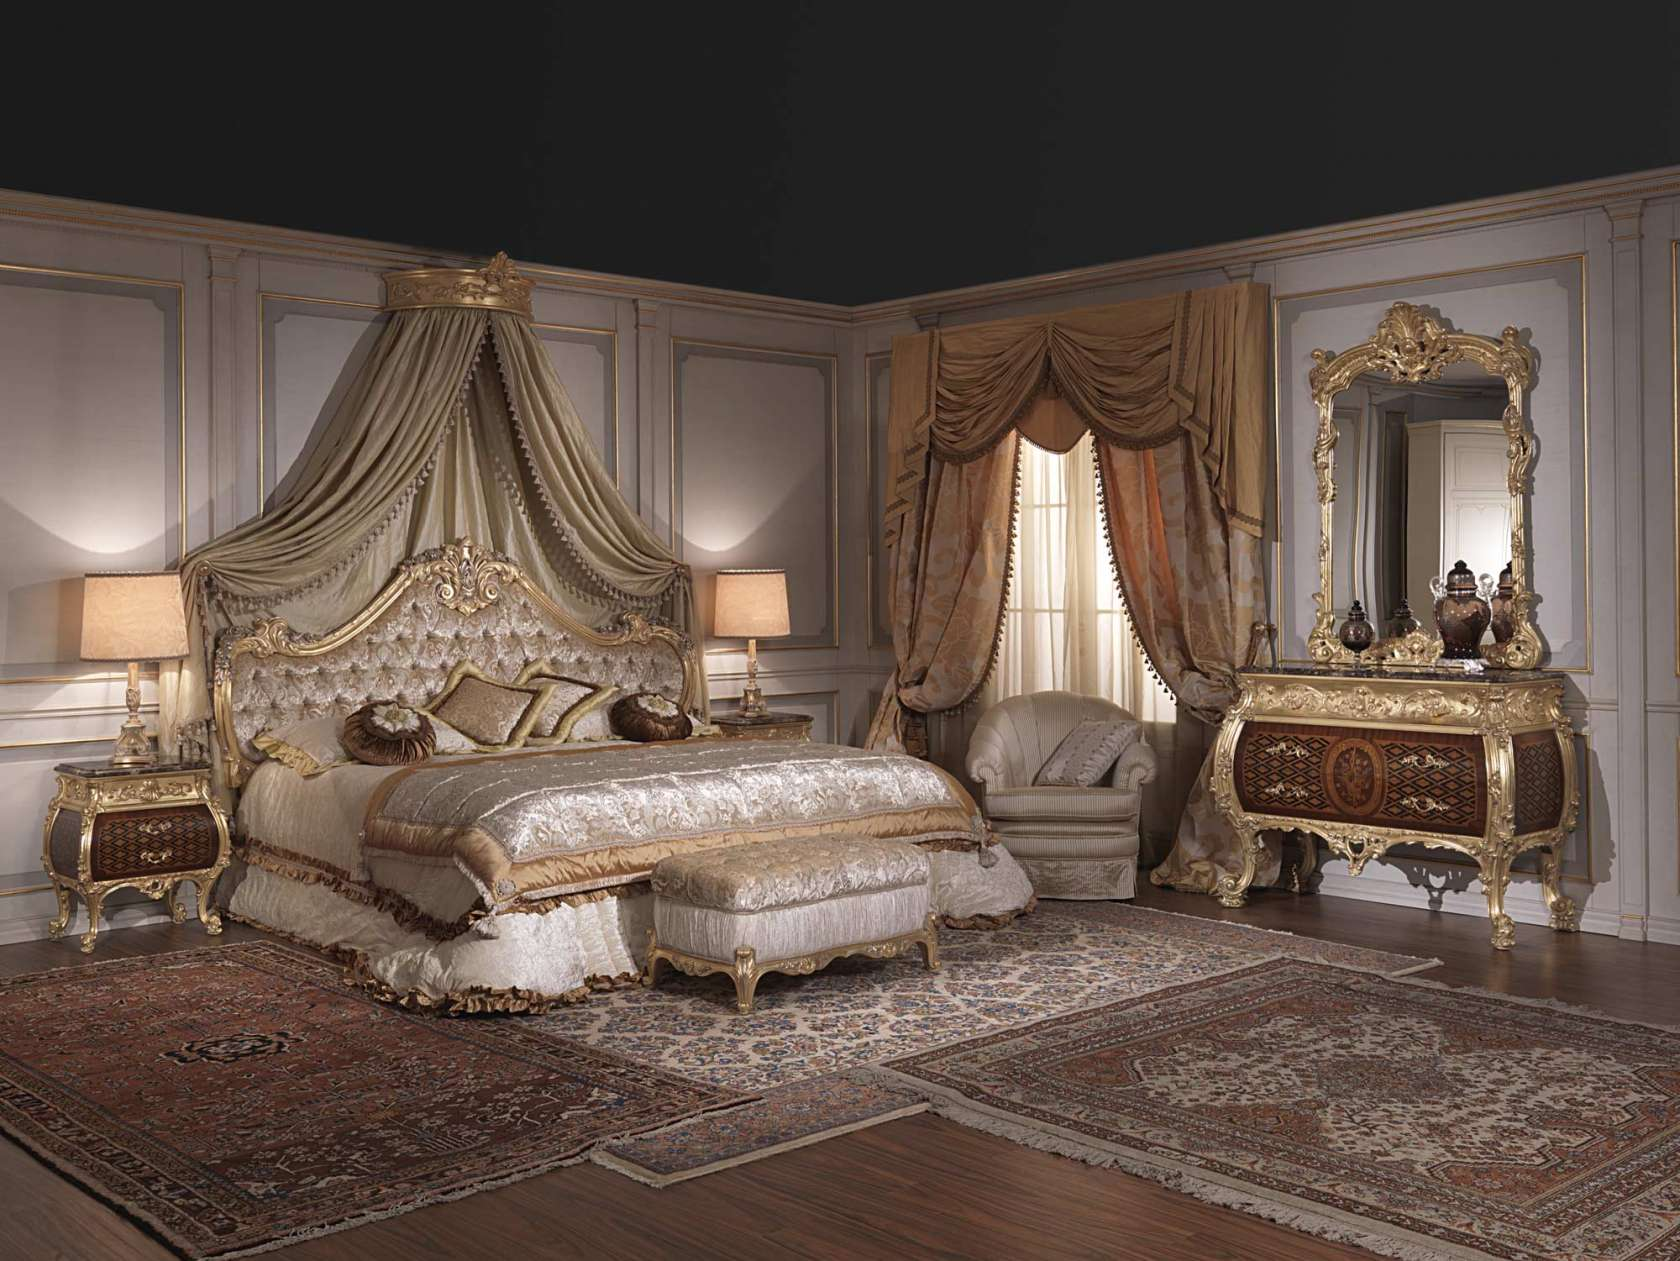 Affordable Luxury Bedroom Sets furniture for luxury bedroom Emperador Gold art. 397-931